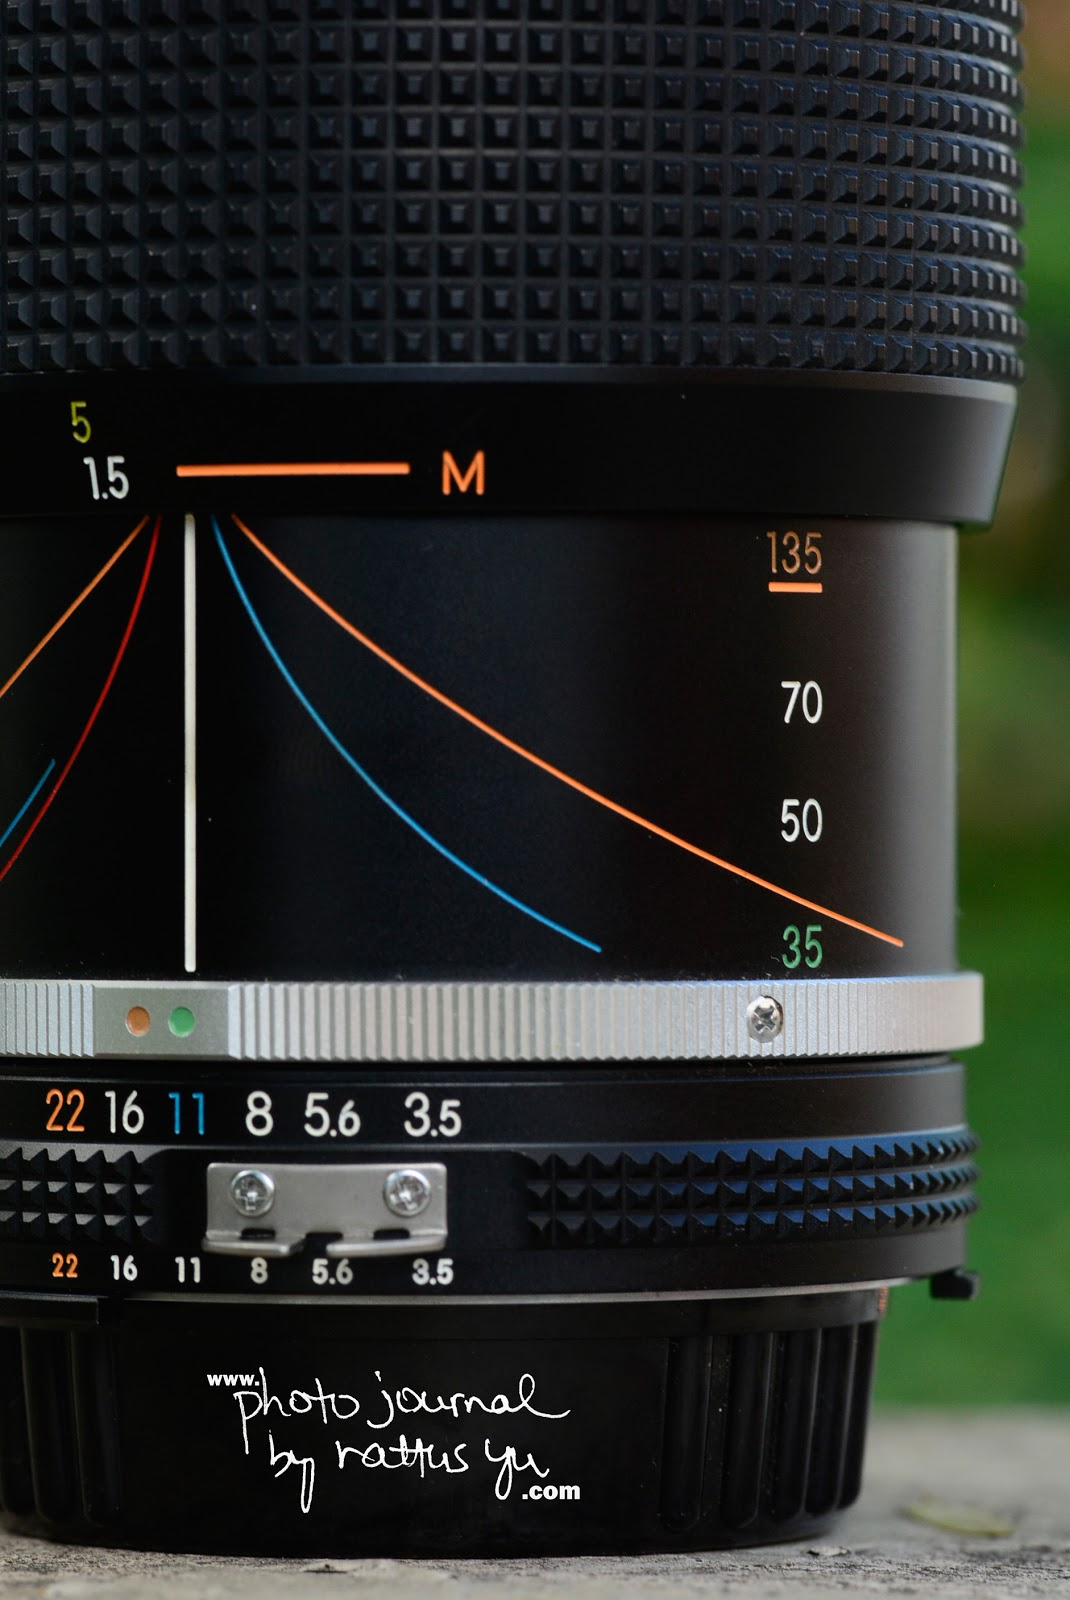 Zoom-Nikkor 35-135mm f/3.5-4.5 AI-S